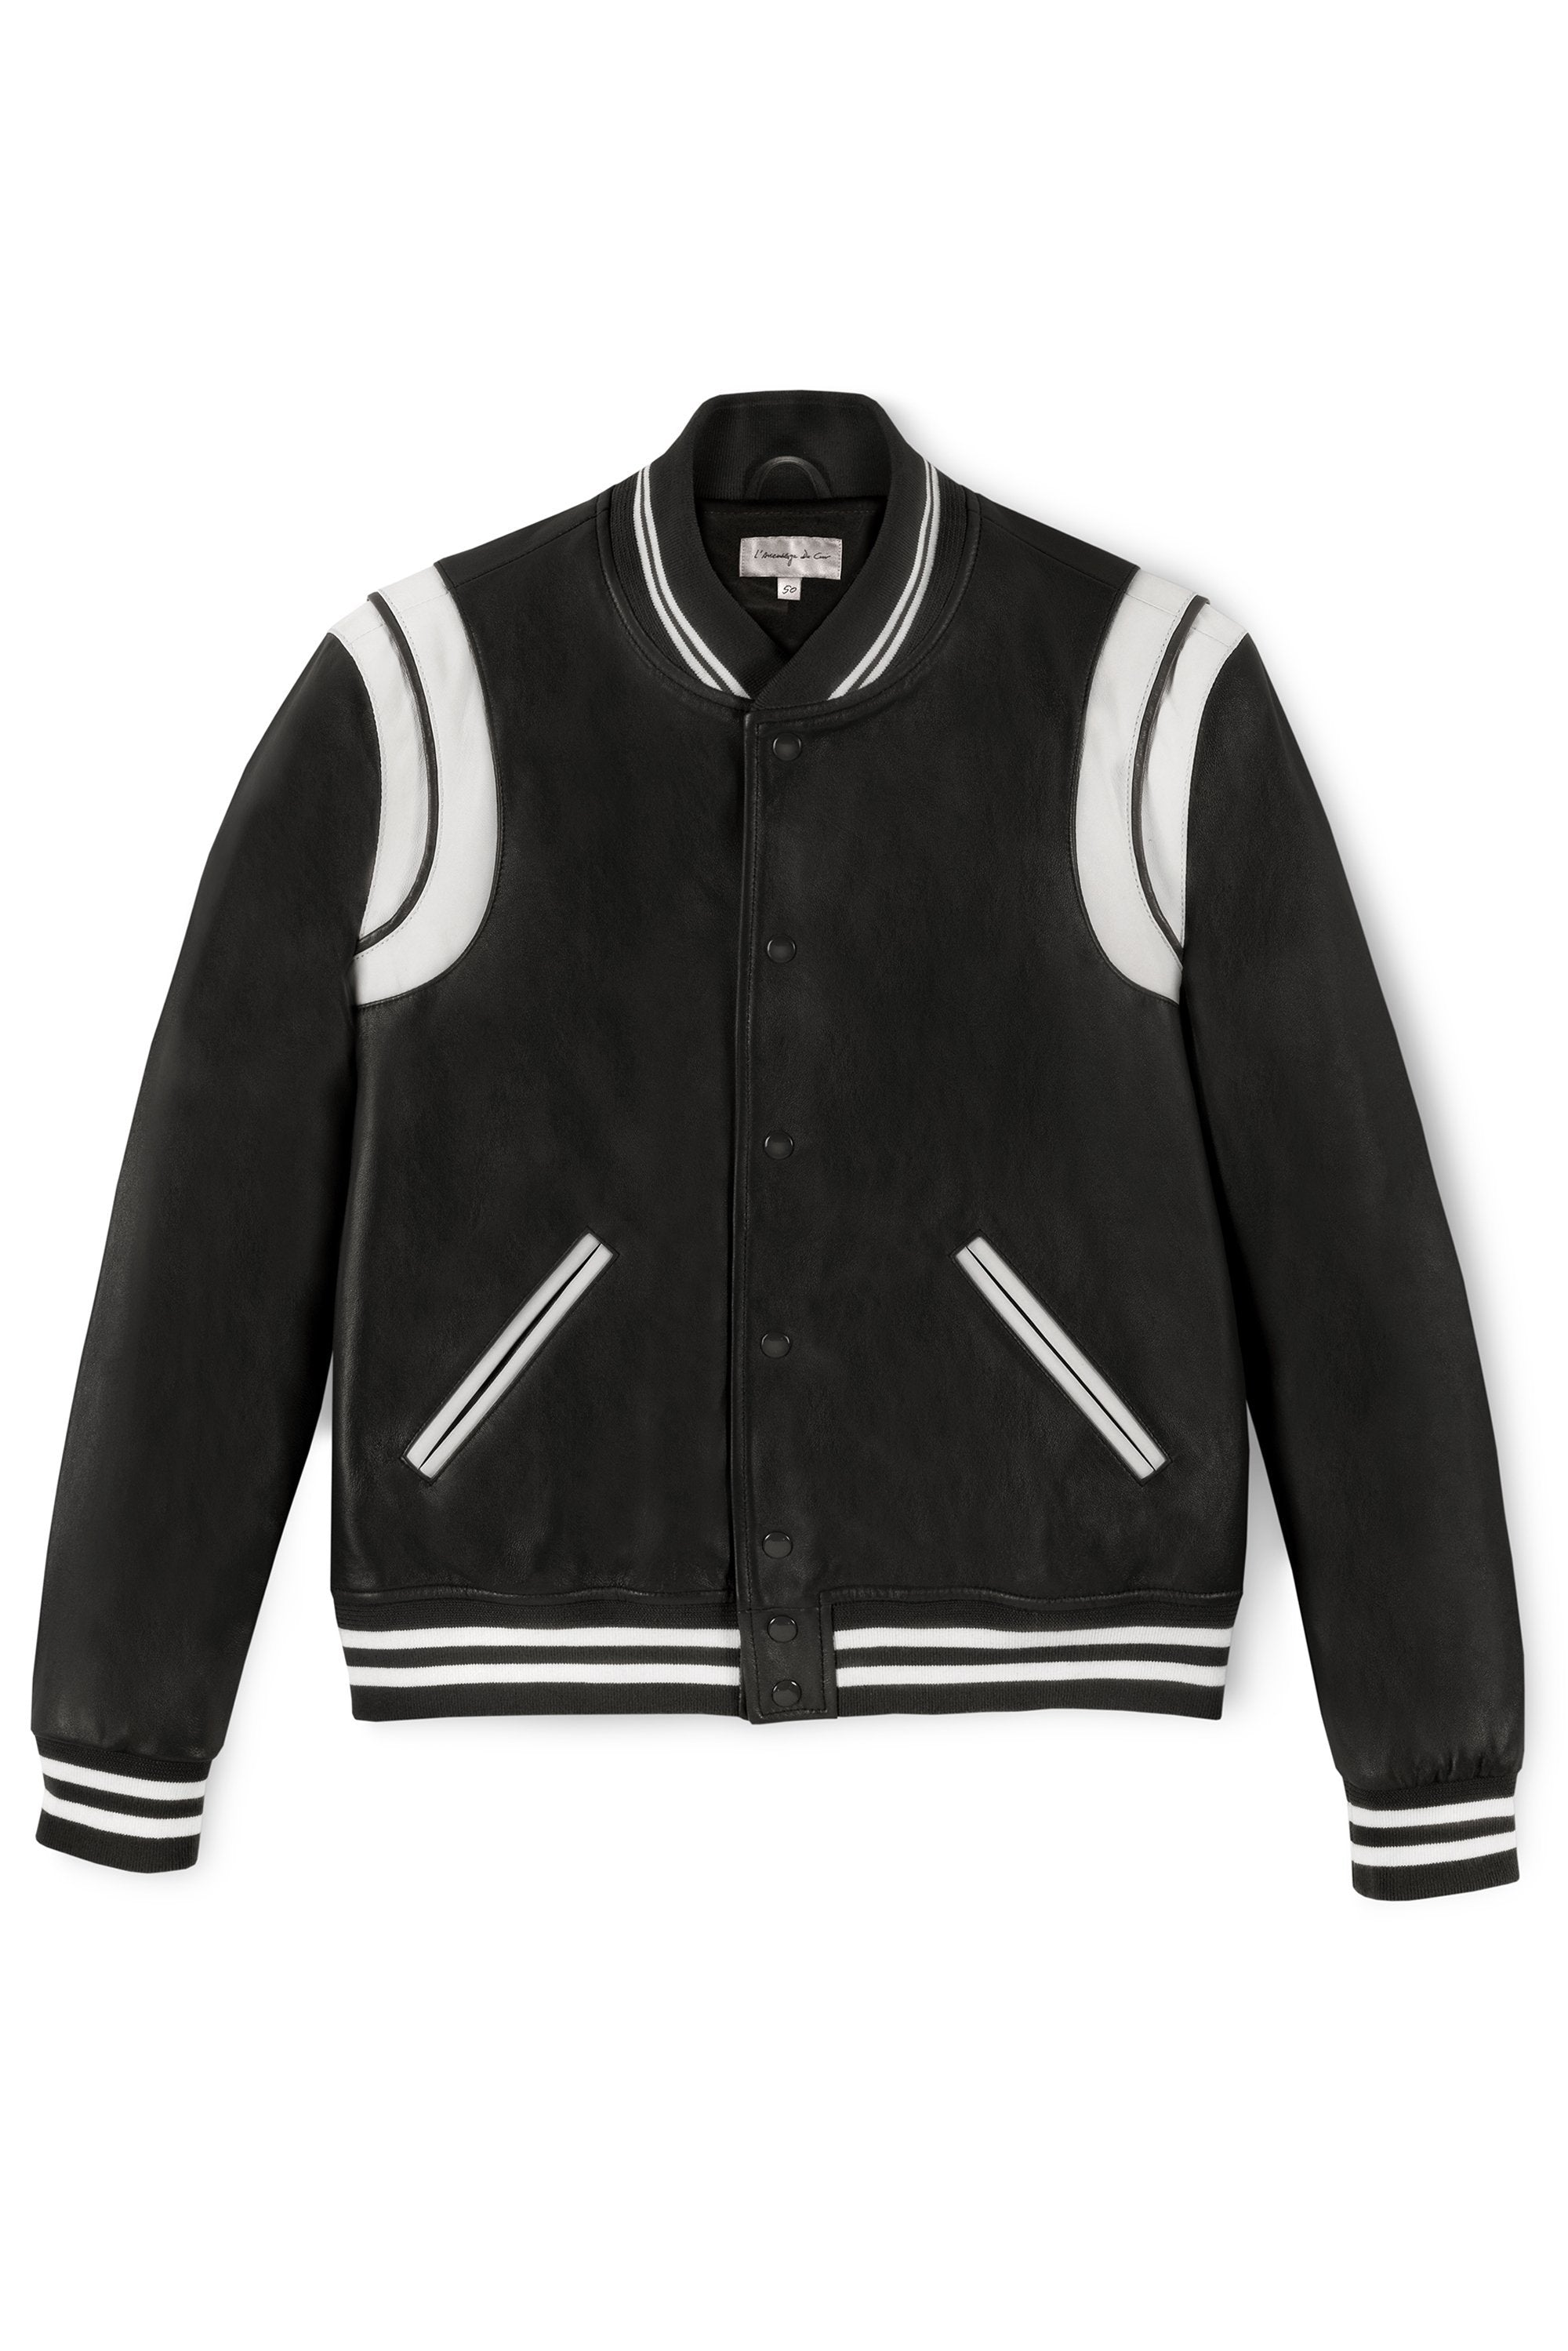 No 1 Varsity Black White The Assembly Of Leather Shop Now Lac